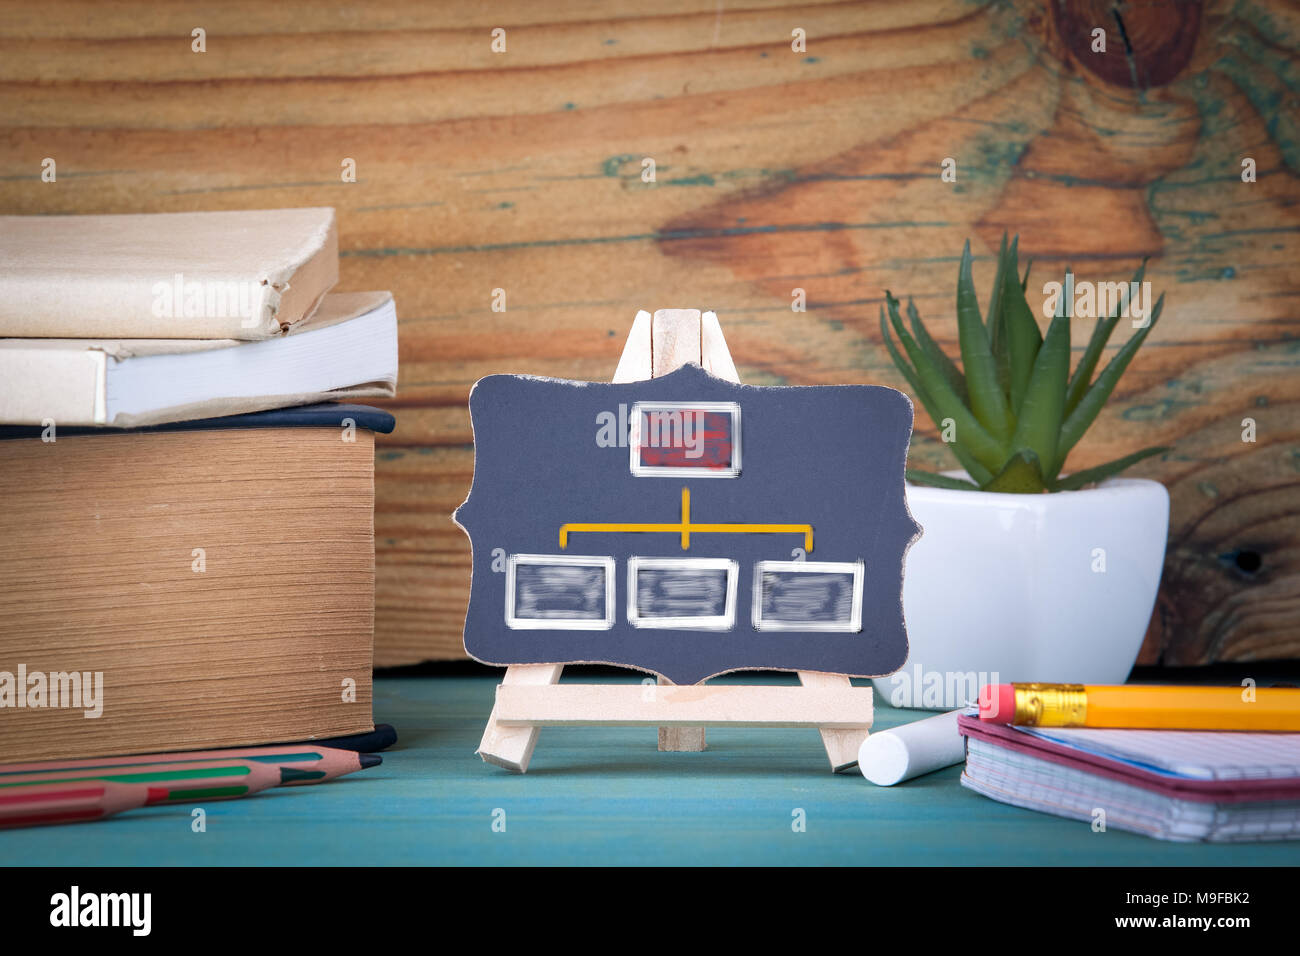 organization chart. small wooden board with chalk - Stock Image